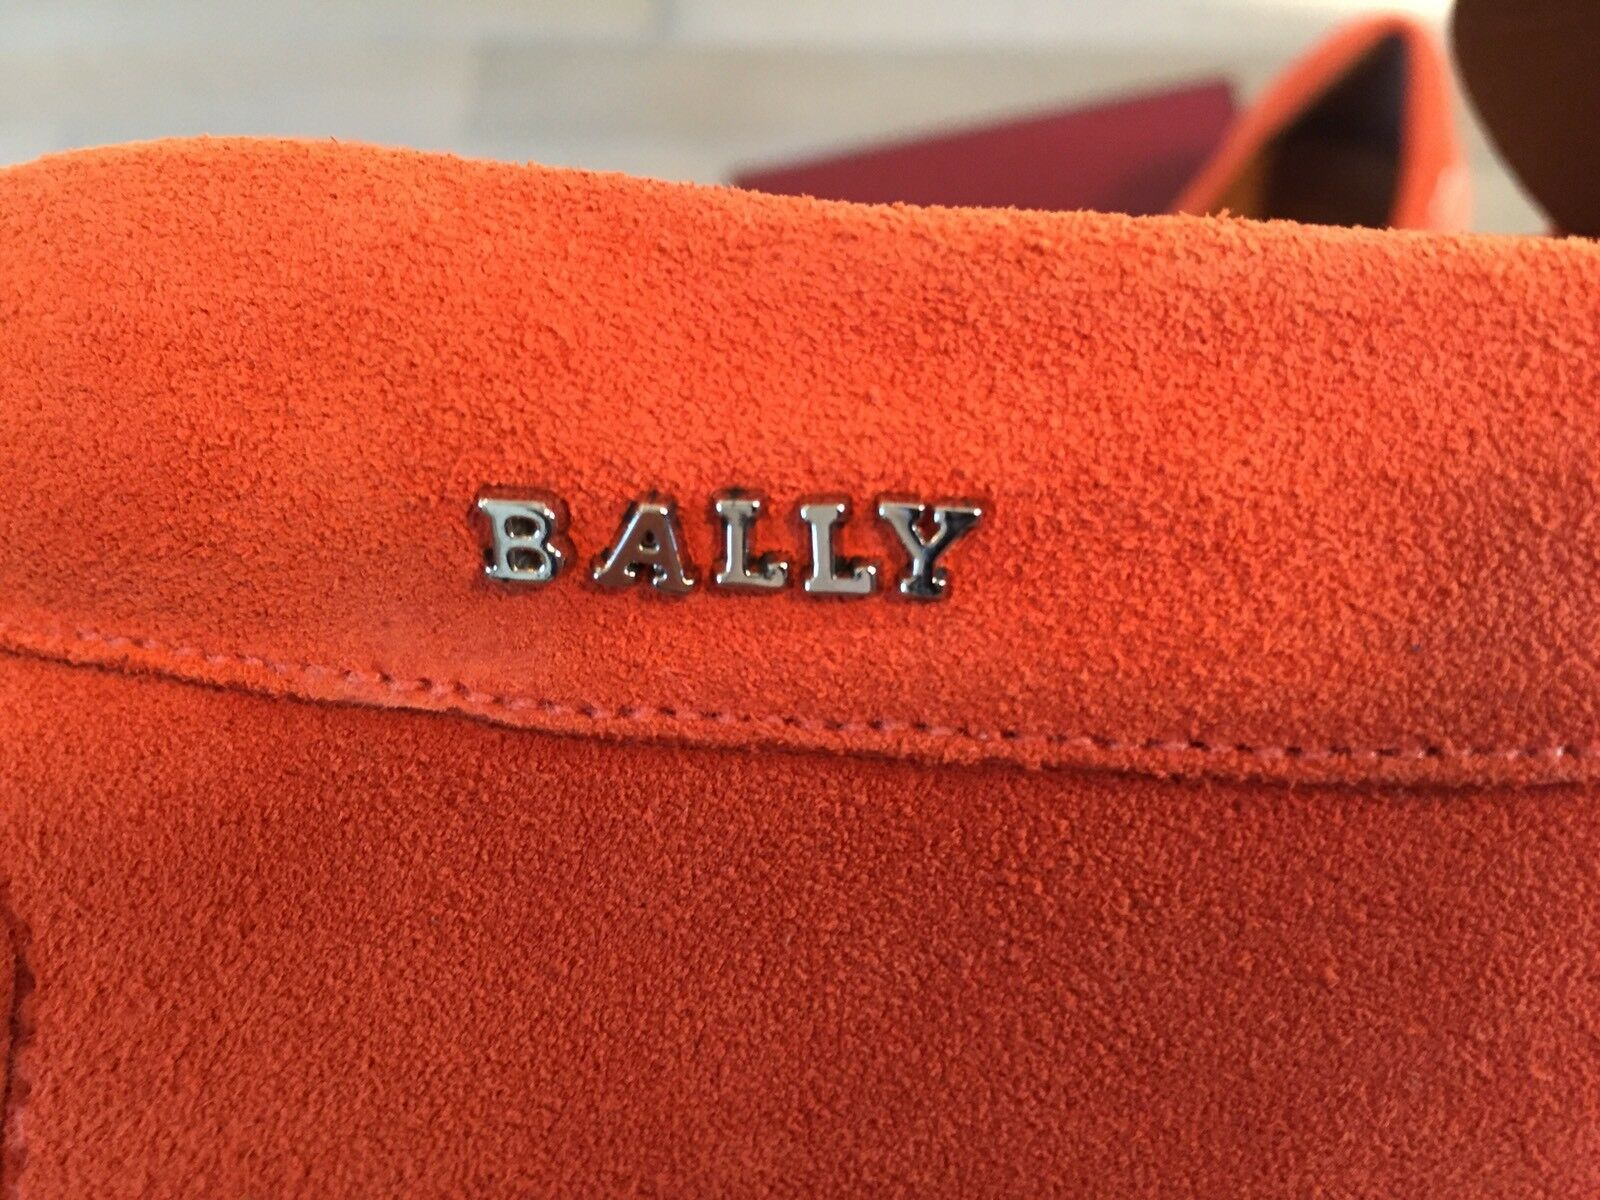 550  Bally Pearce Blaze Orange Suede Suede Suede Driver Size US 11 Made in Italy 101b09